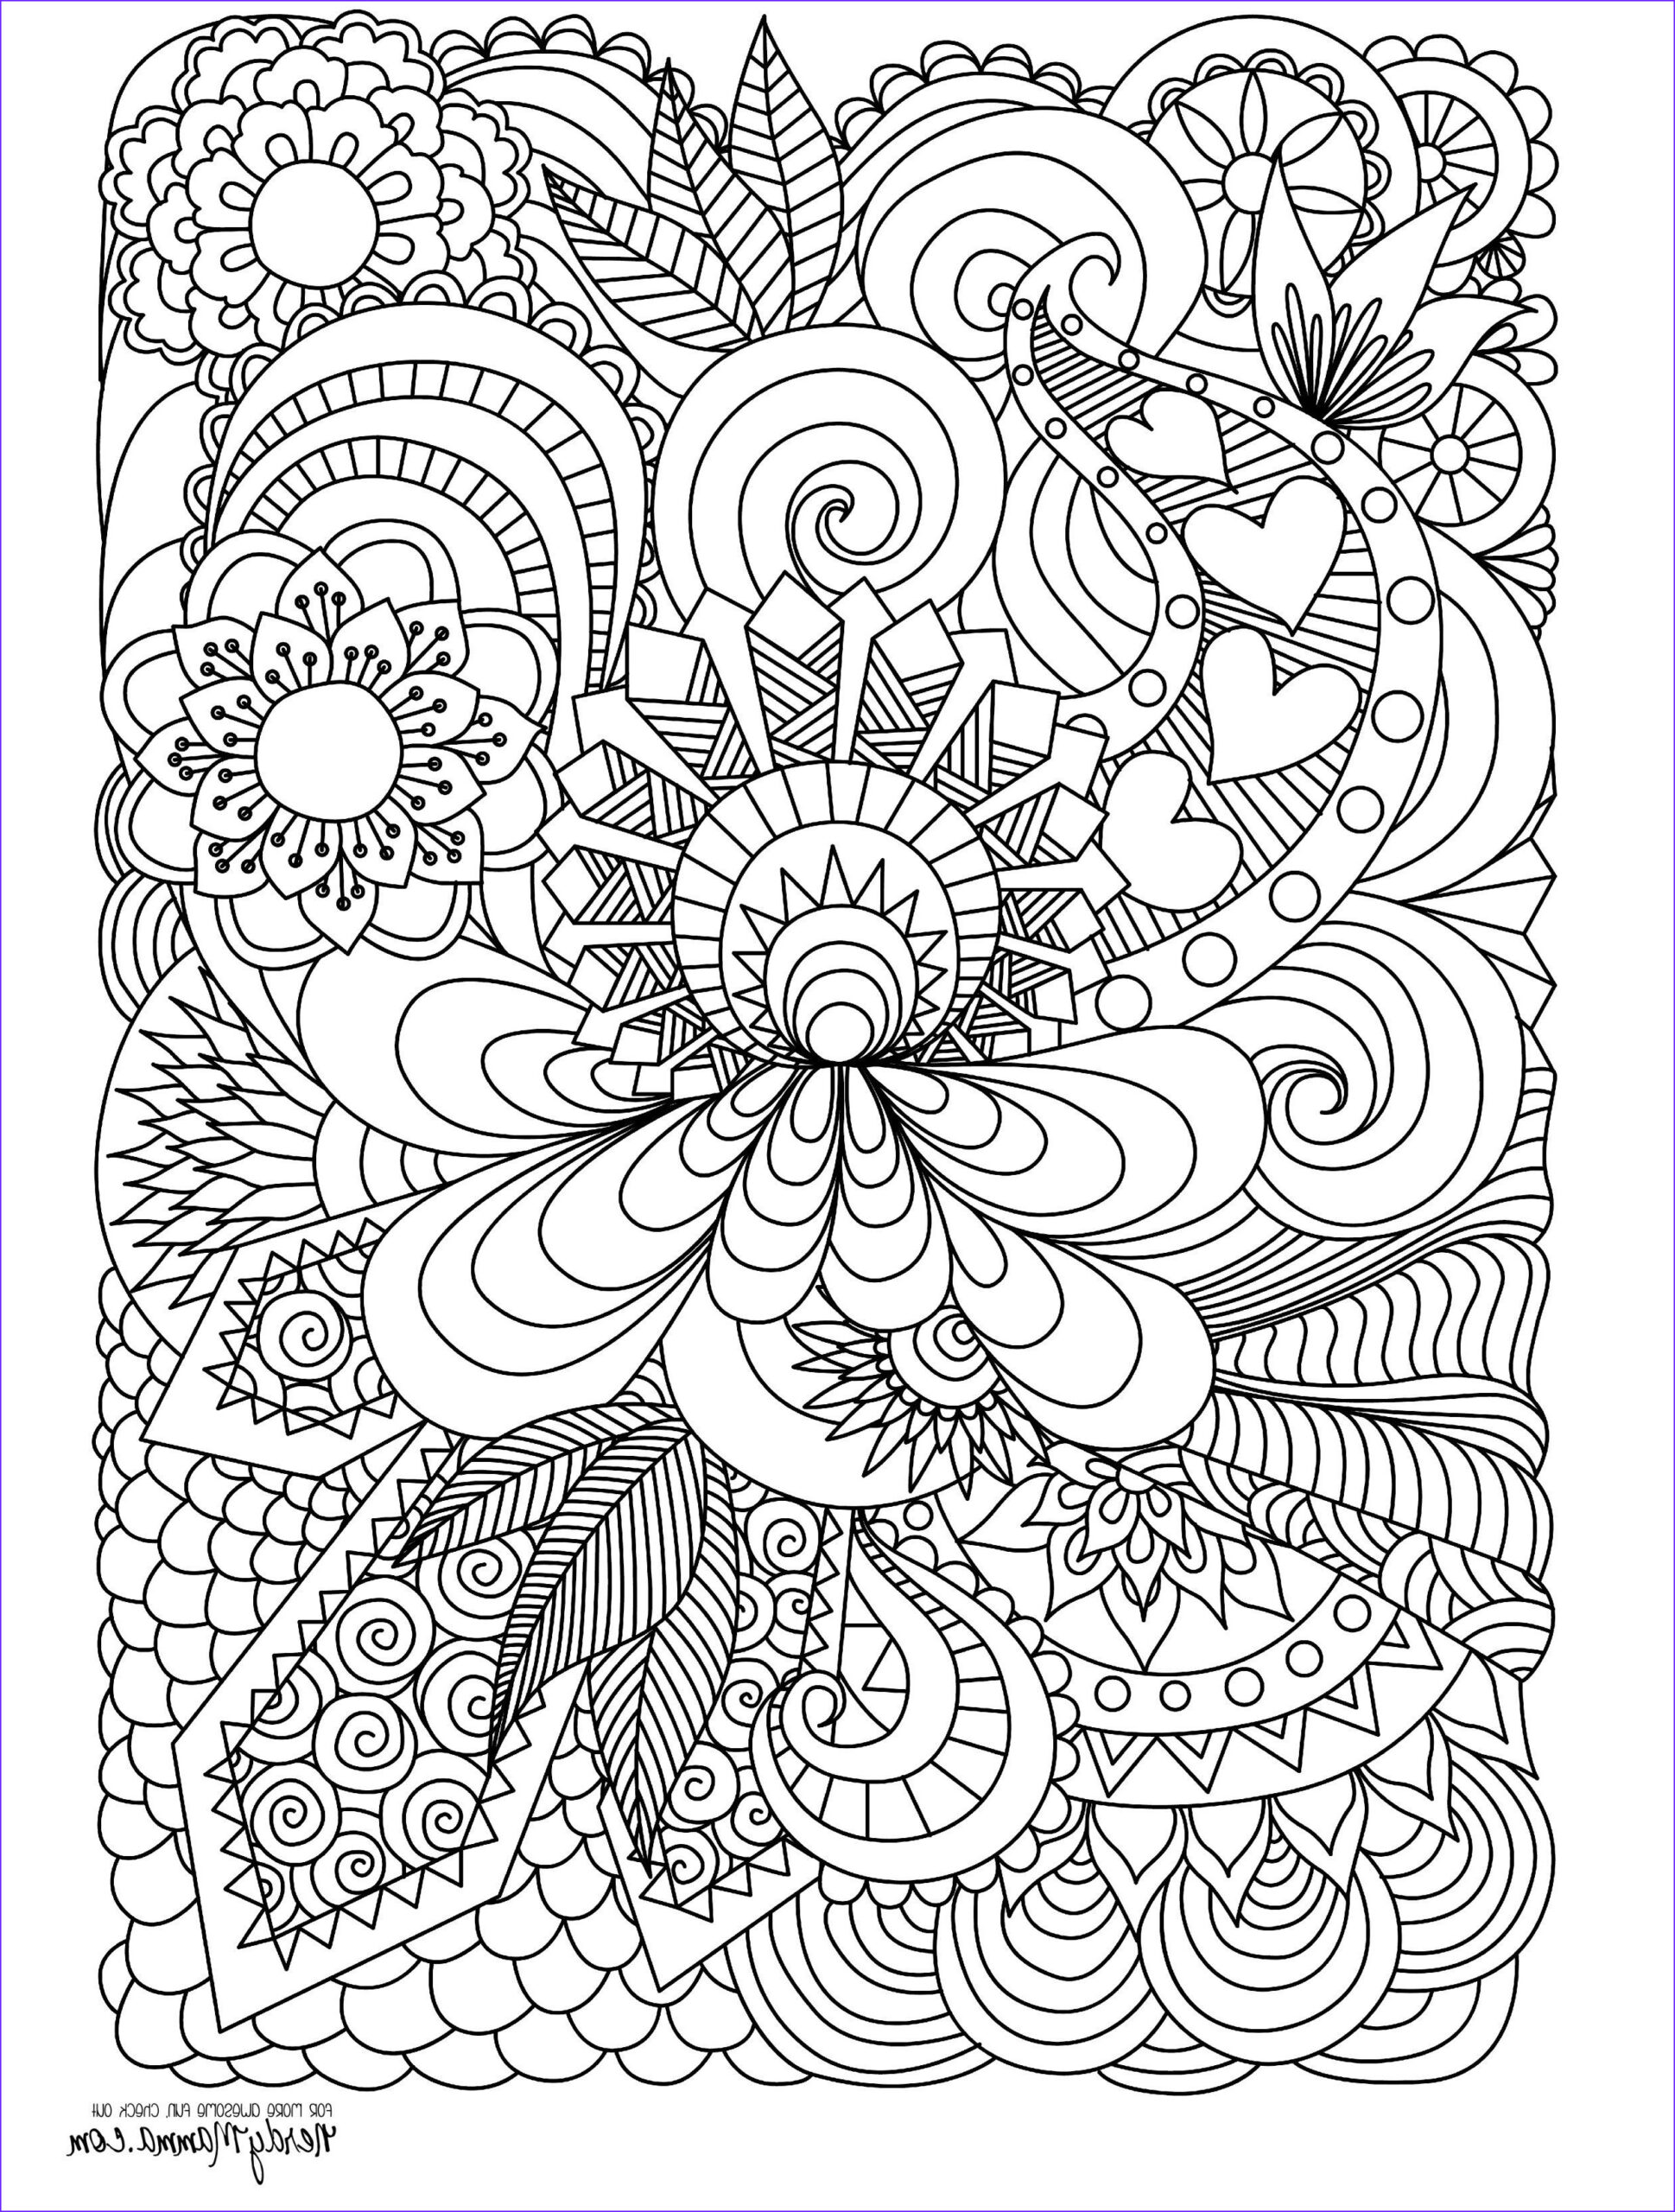 Free Abstract Coloring Pages Beautiful Gallery 11 Free Printable Adult Coloring Pages